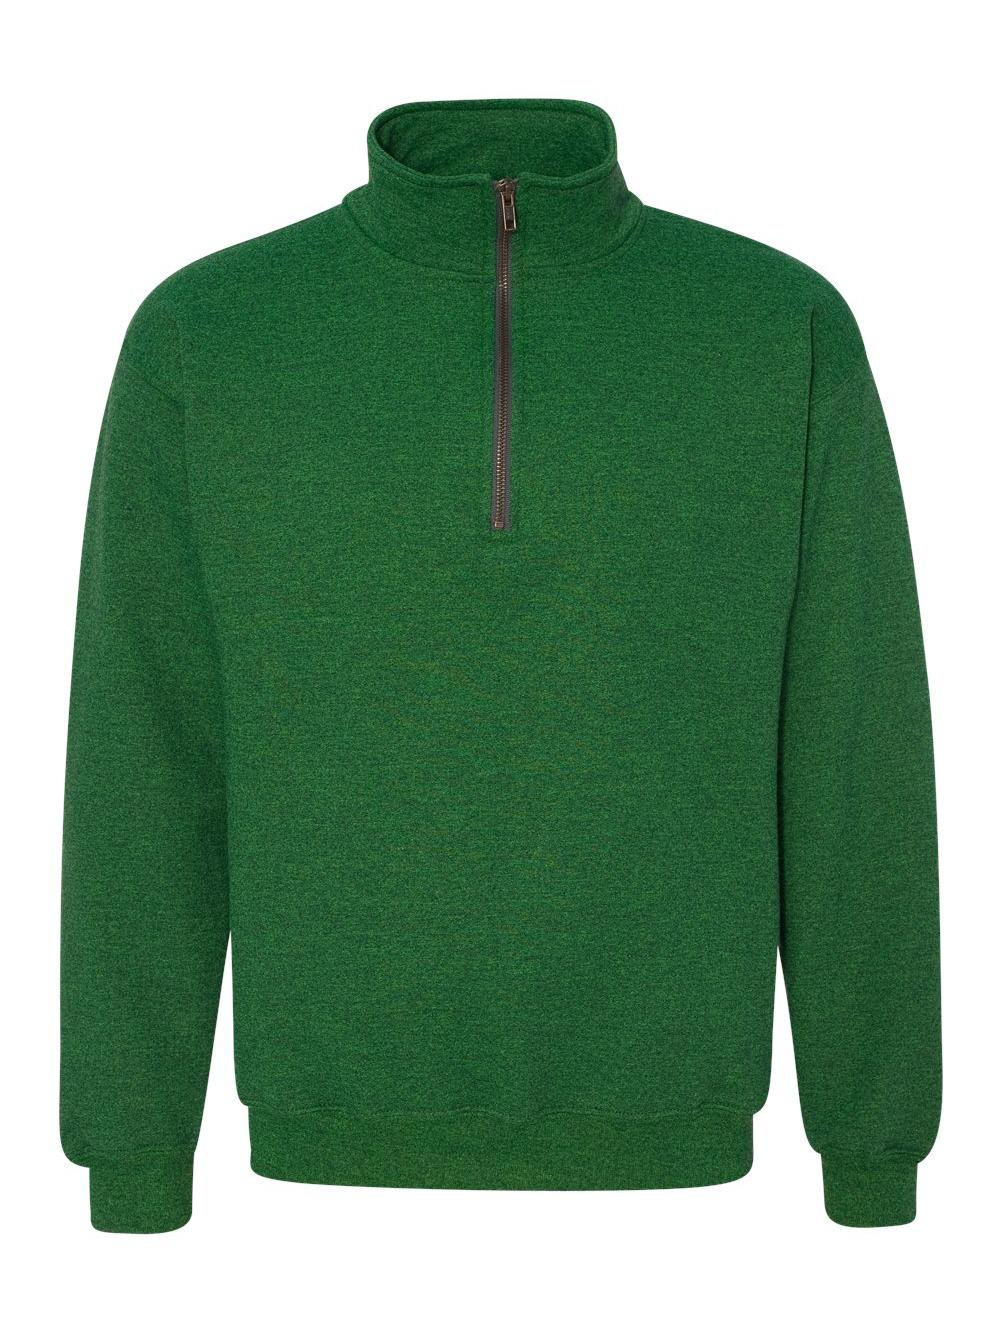 Gildan-Heavy-Blend-Quarter-Zip-Cadet-Collar-Sweatshirt-18800 thumbnail 15